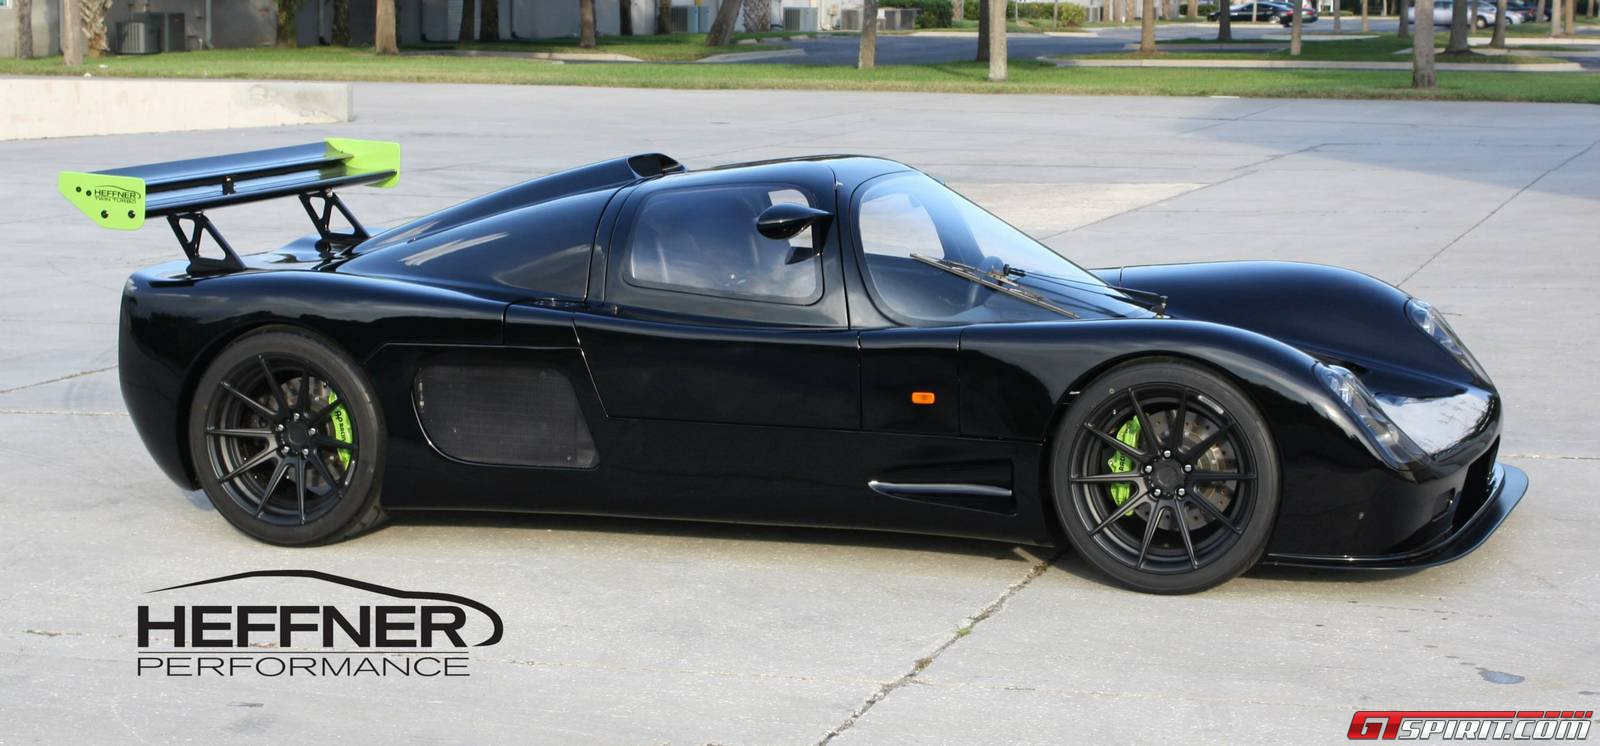 1000hp Twin Turbo Ultima GTR by Heffner Performance - GTspirit